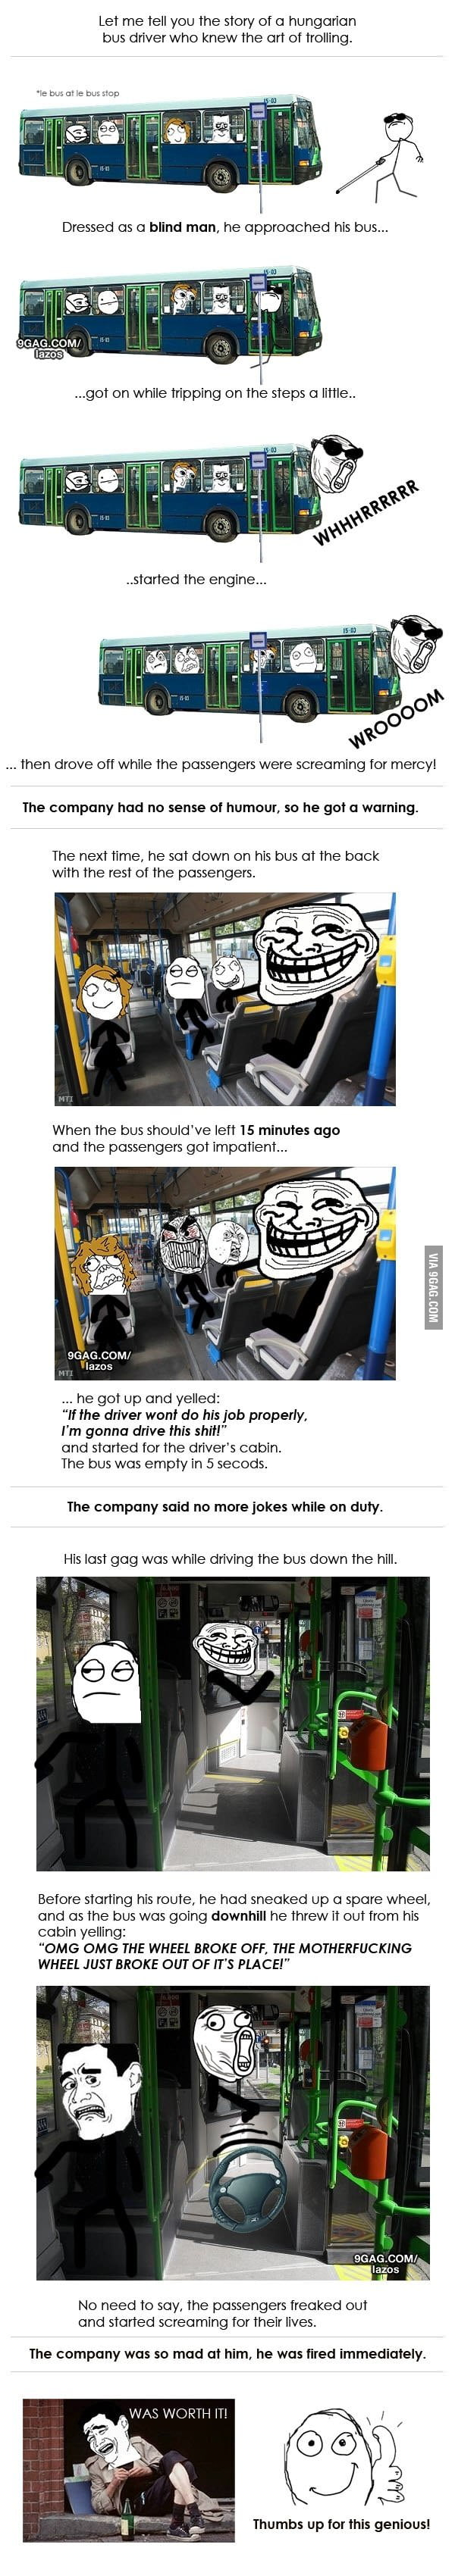 Art of trolling - The bus driver